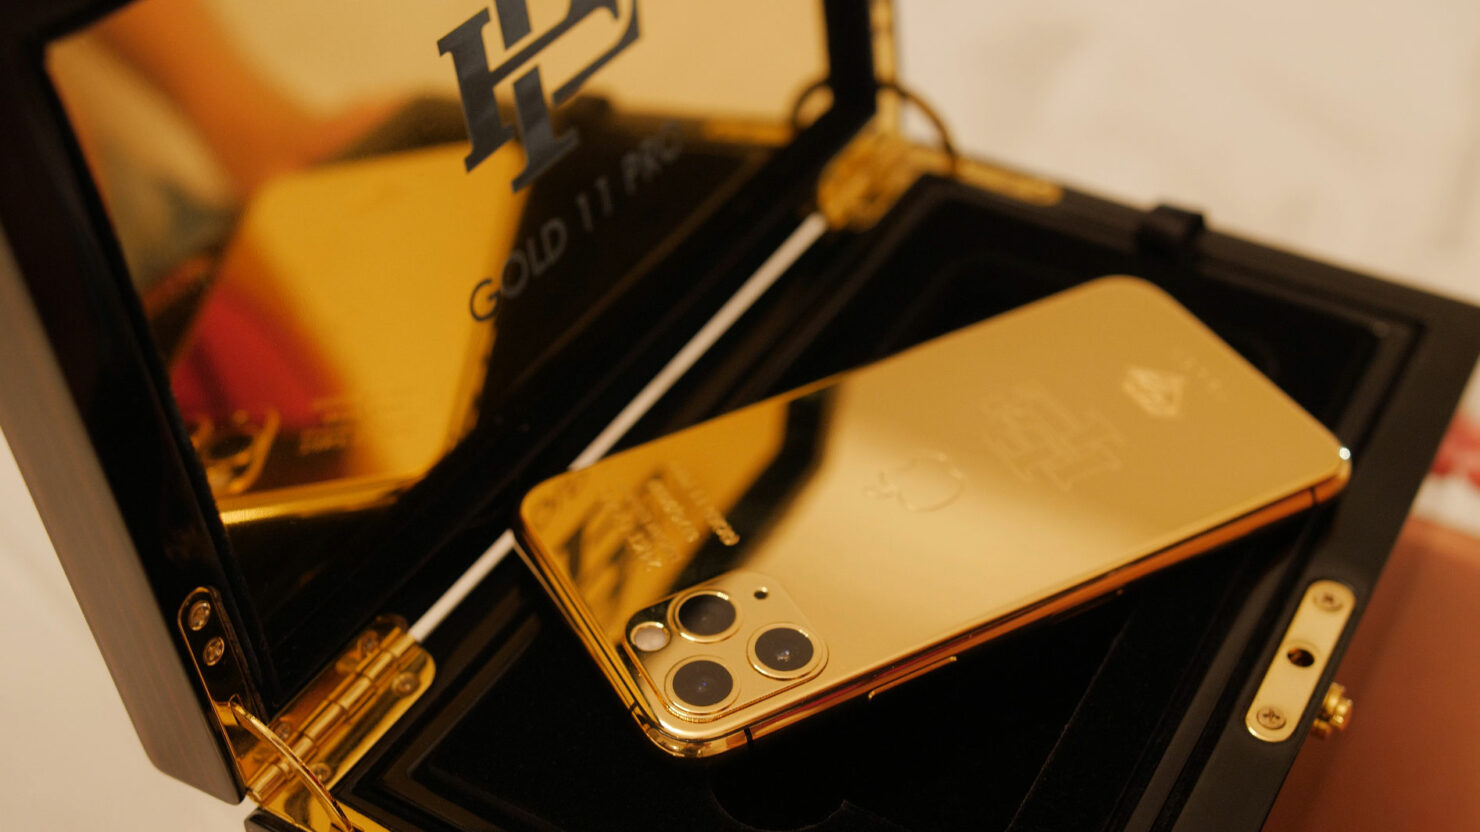 Pablo Escobar's Brother Is Now Selling 24k Gold-Plated iPhone 11 Pro Models for $499